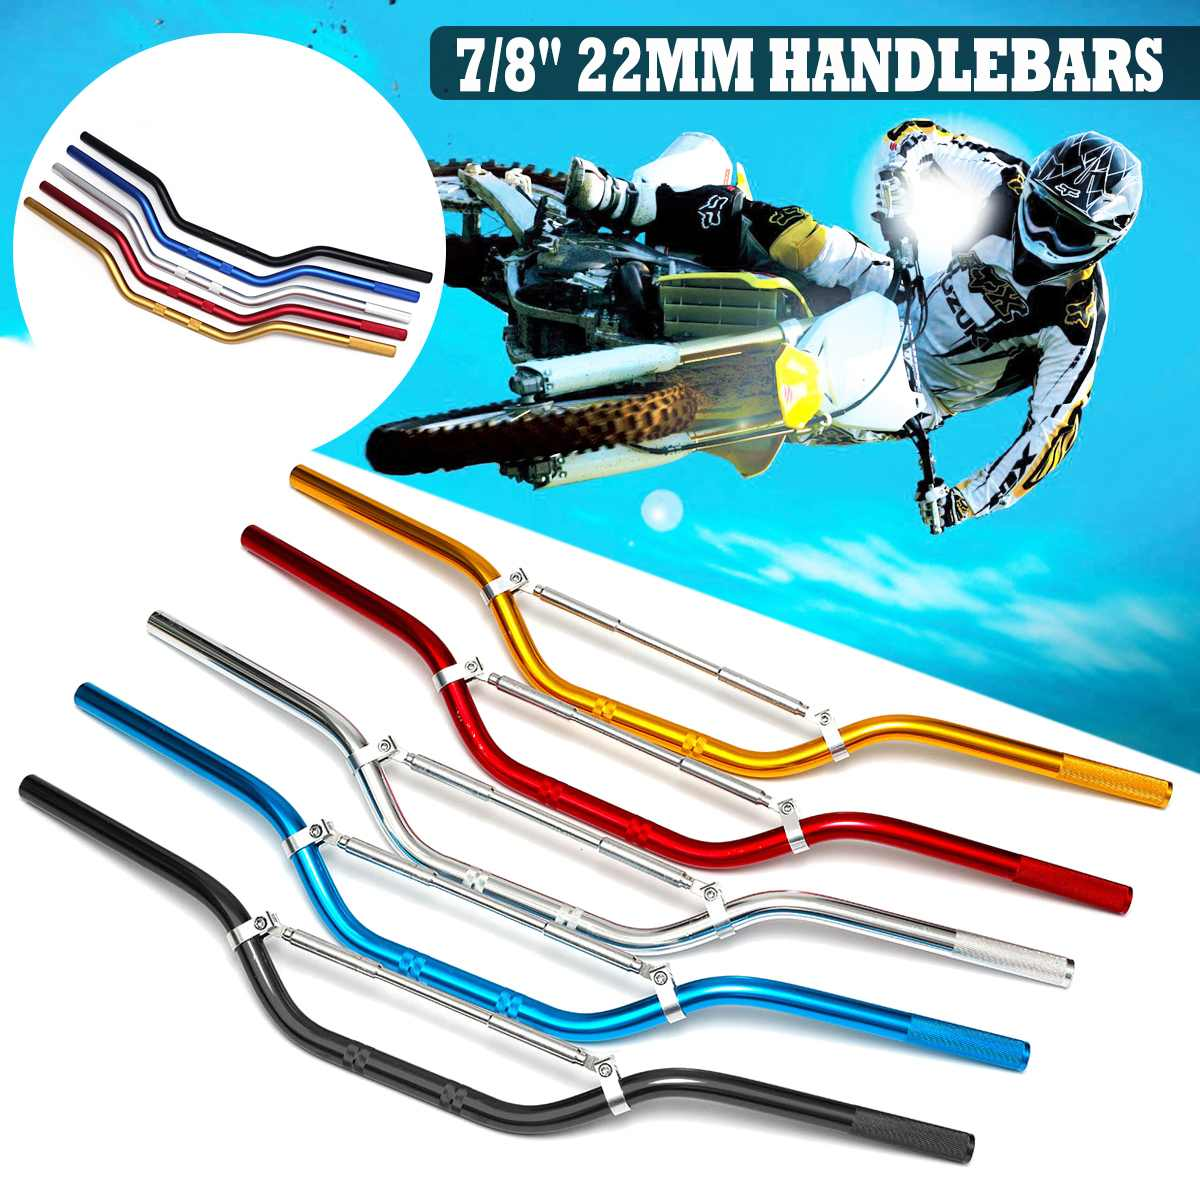 22mm Universal Motorcycle Handlebar Motor Motorbike Aluminum Alloy Handlebars Moto Scooter Retro Black Anti-rust Handle Bars